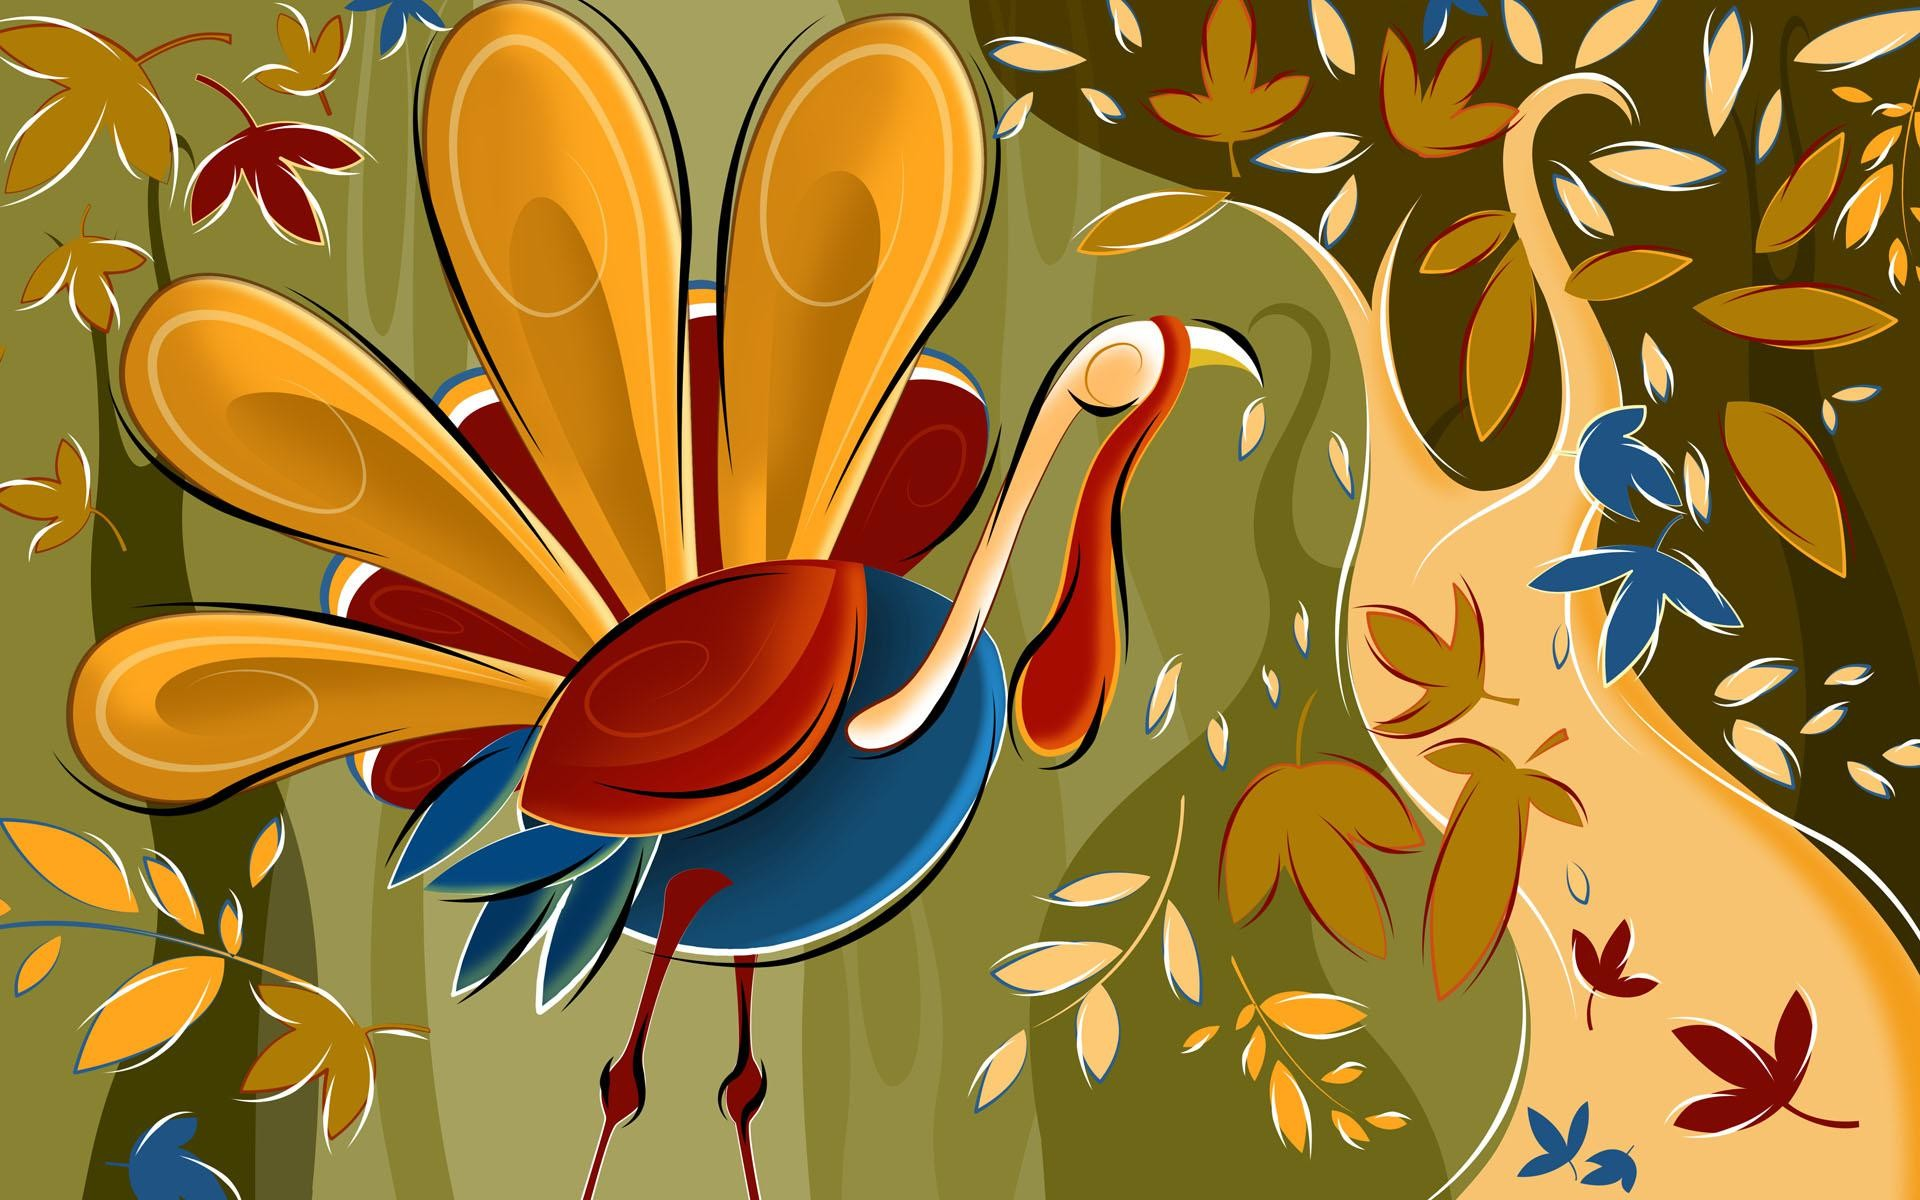 Res: 1920x1200, Be-Thankful-Every-Day-Not-Just-On-Thanksgiving-